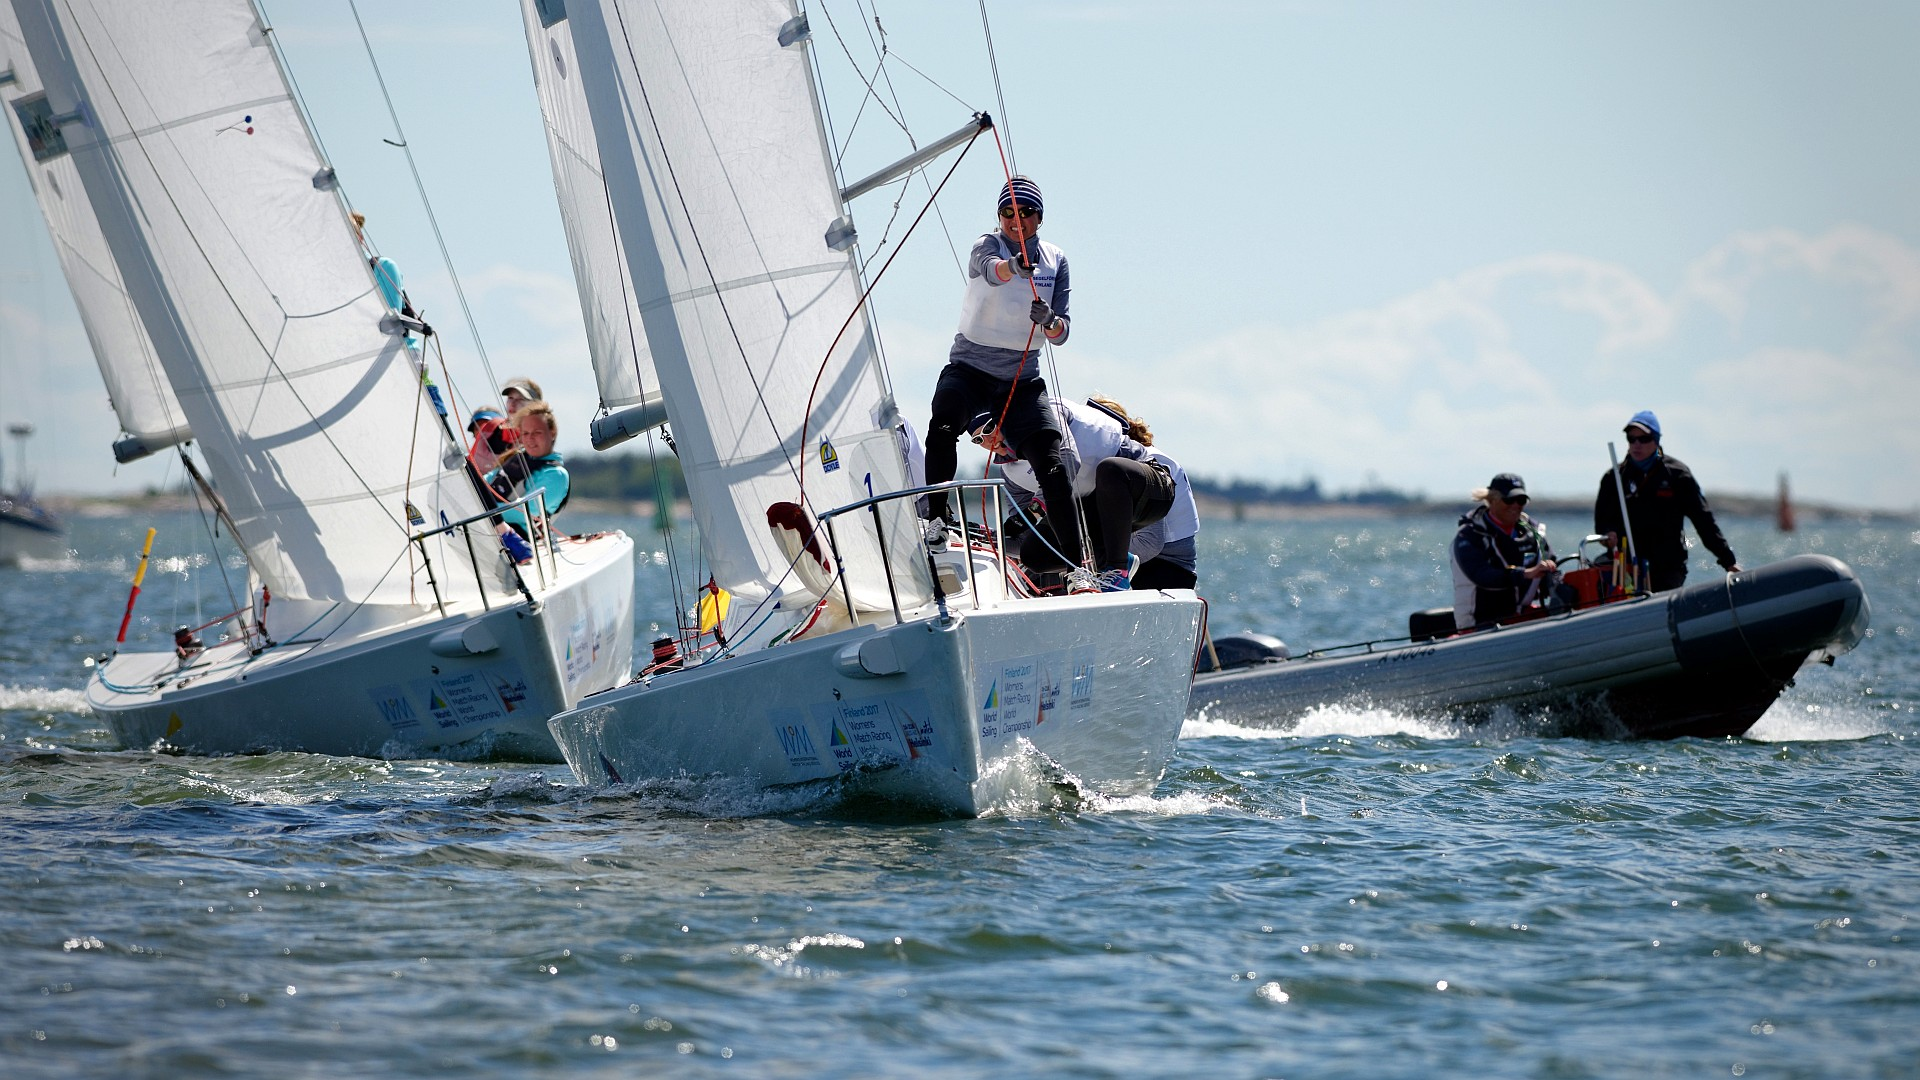 NJK hosting the Women's Match Racing World Championship in Helsinki. The results and more media are available at the event Facebook page. Read also the World Sailing press release. Photos from the finals (bronze) Palludan – Östling and (gold) McGregor – Groenevold  Photos from semifinals 21.6.2017: Palludan against Groeneveld and Östling against MacGregor  […]